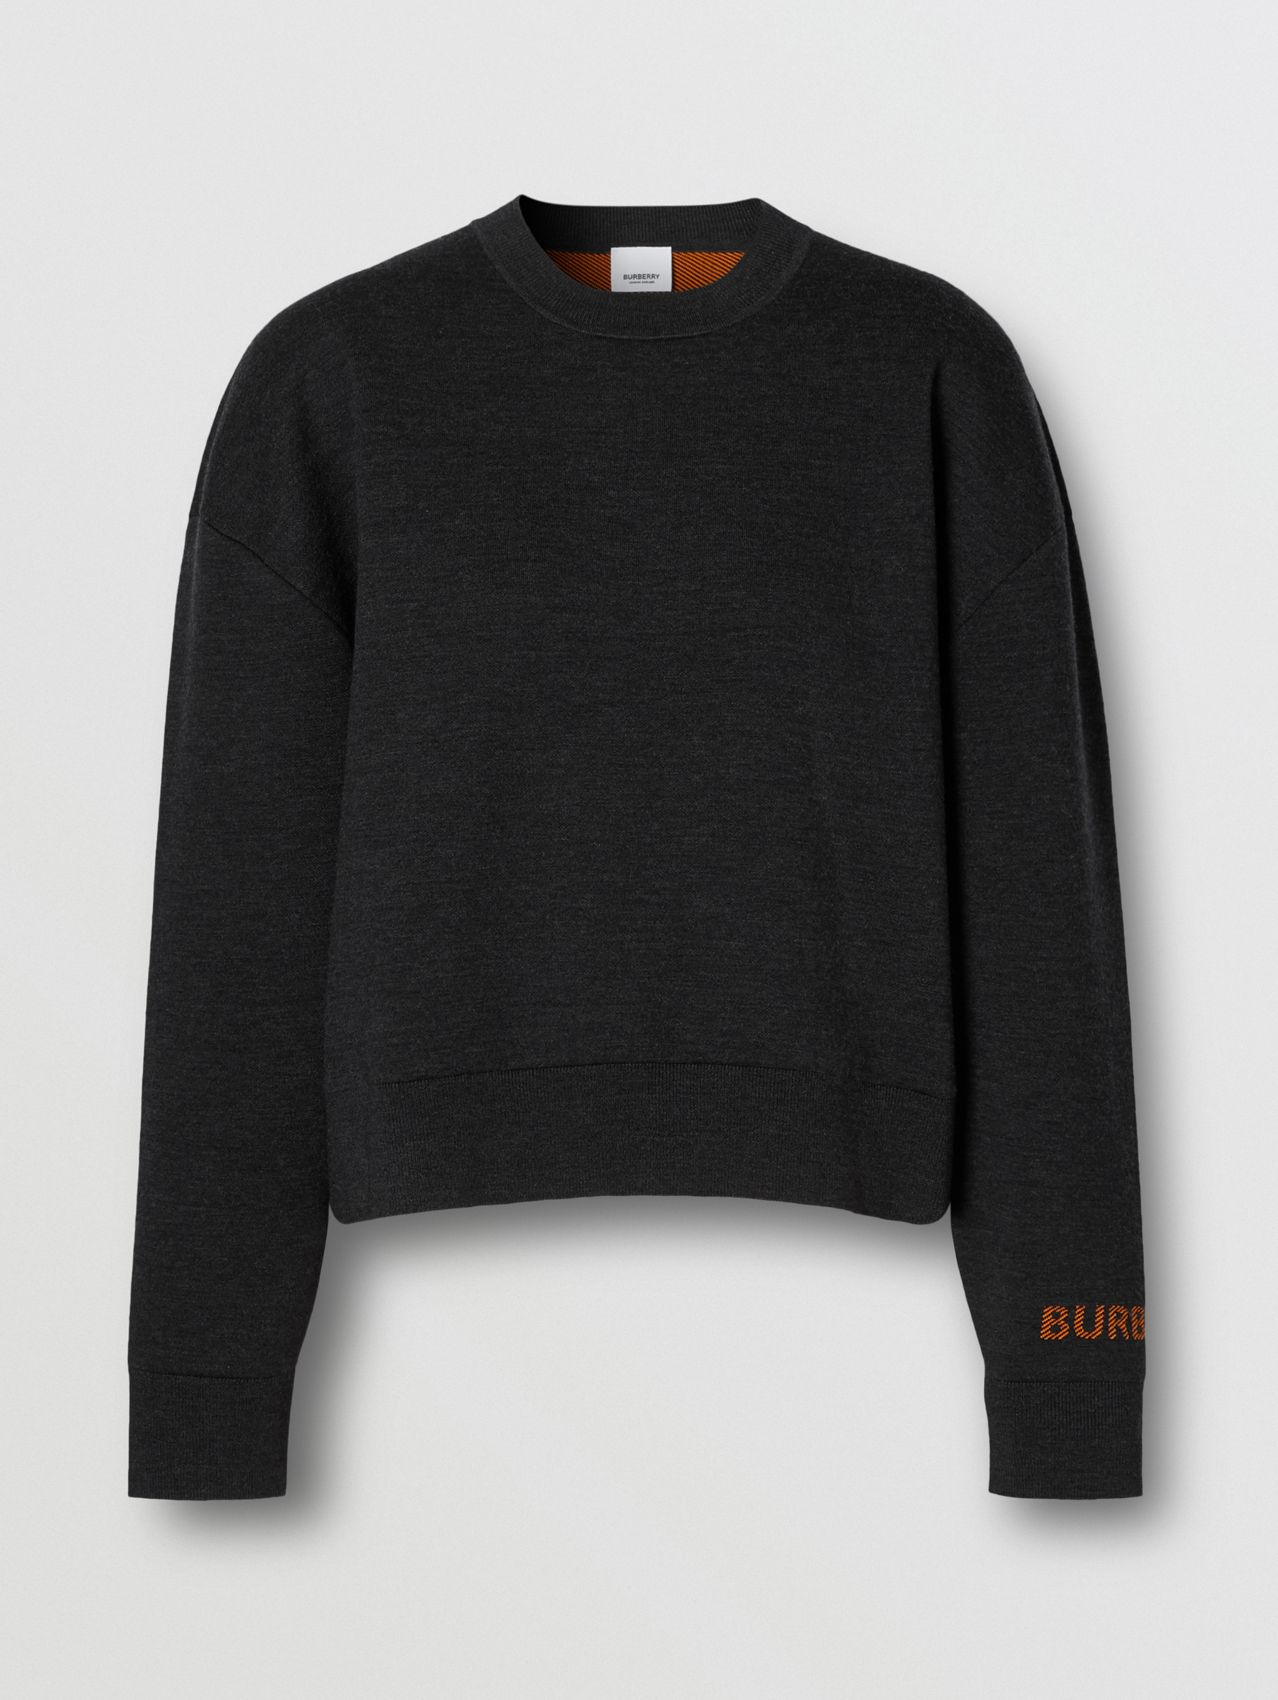 Logo Technical Merino Wool Jacquard Sweater in Charcoal Melange